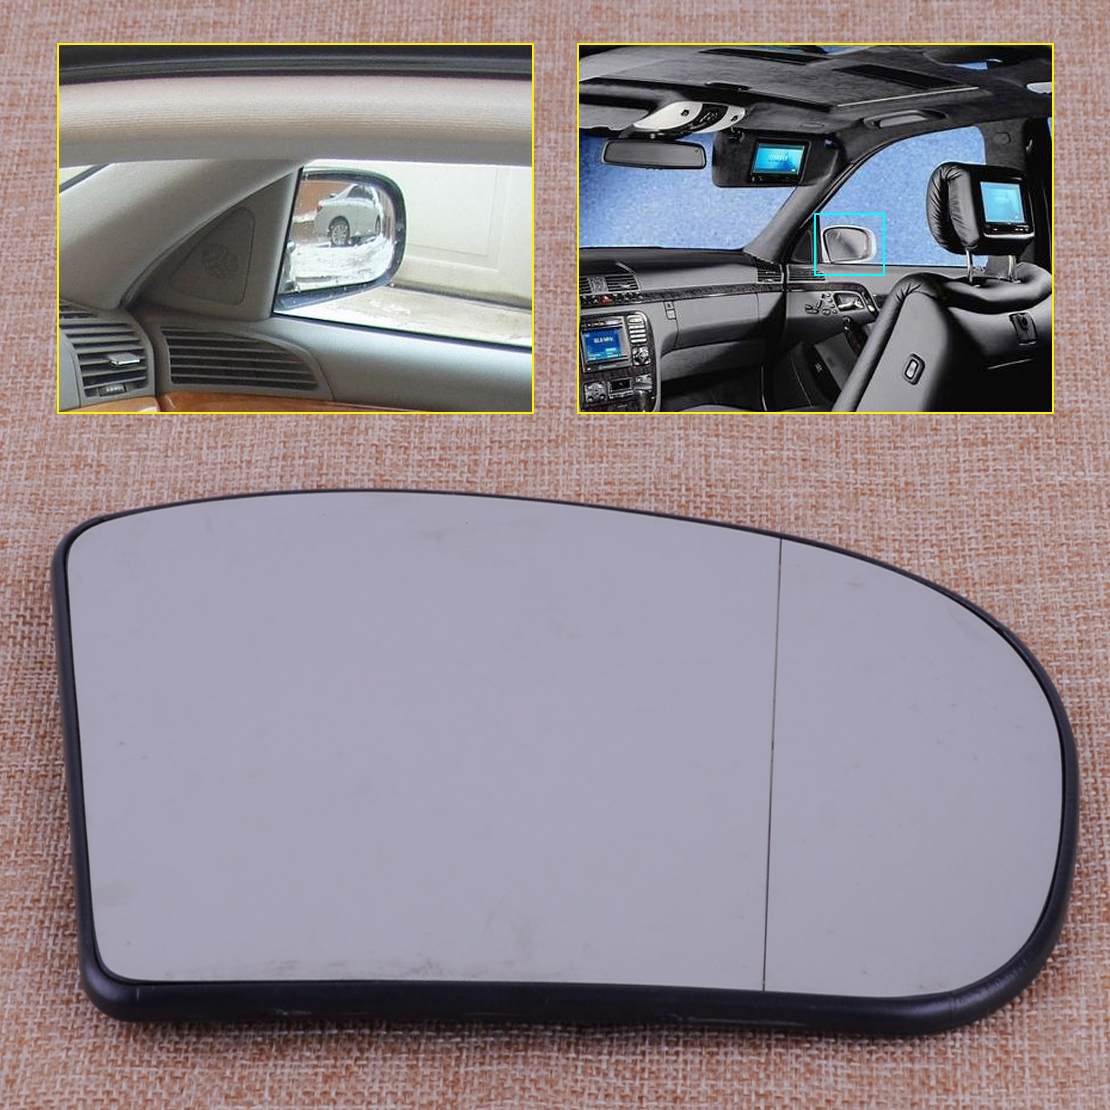 CITALL 2038100221 Right Heated Wide Angle Door Mirror Glass Fit For Mercedes E C Class W211 W203 E320 E500 E55 C230 C240 C280